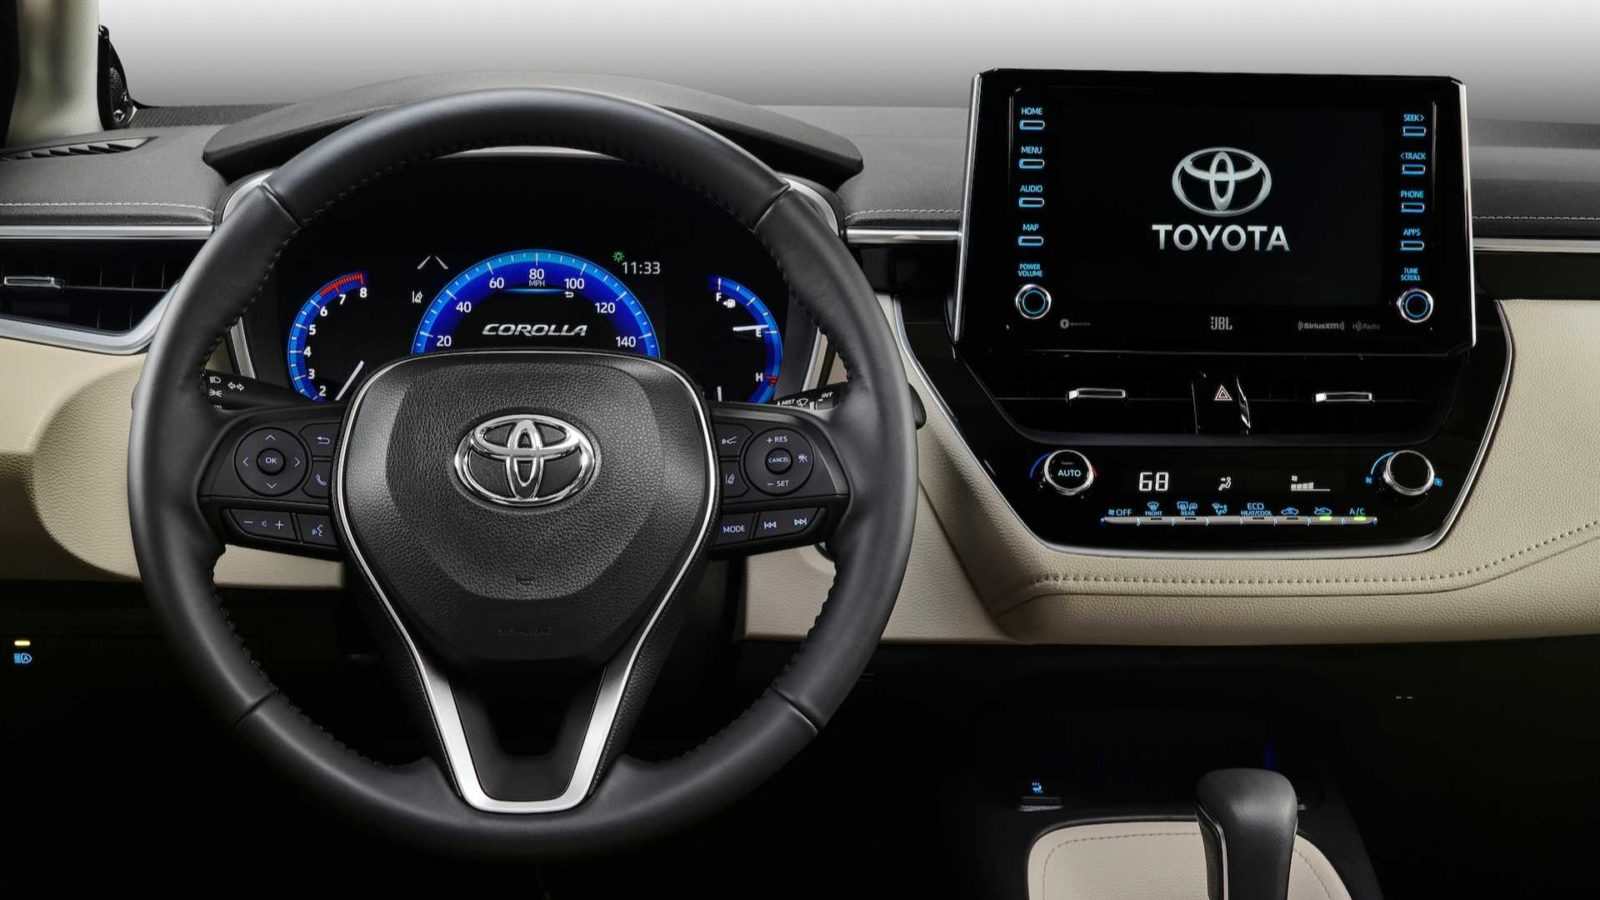 The Exterior of Toyota Corolla 2020